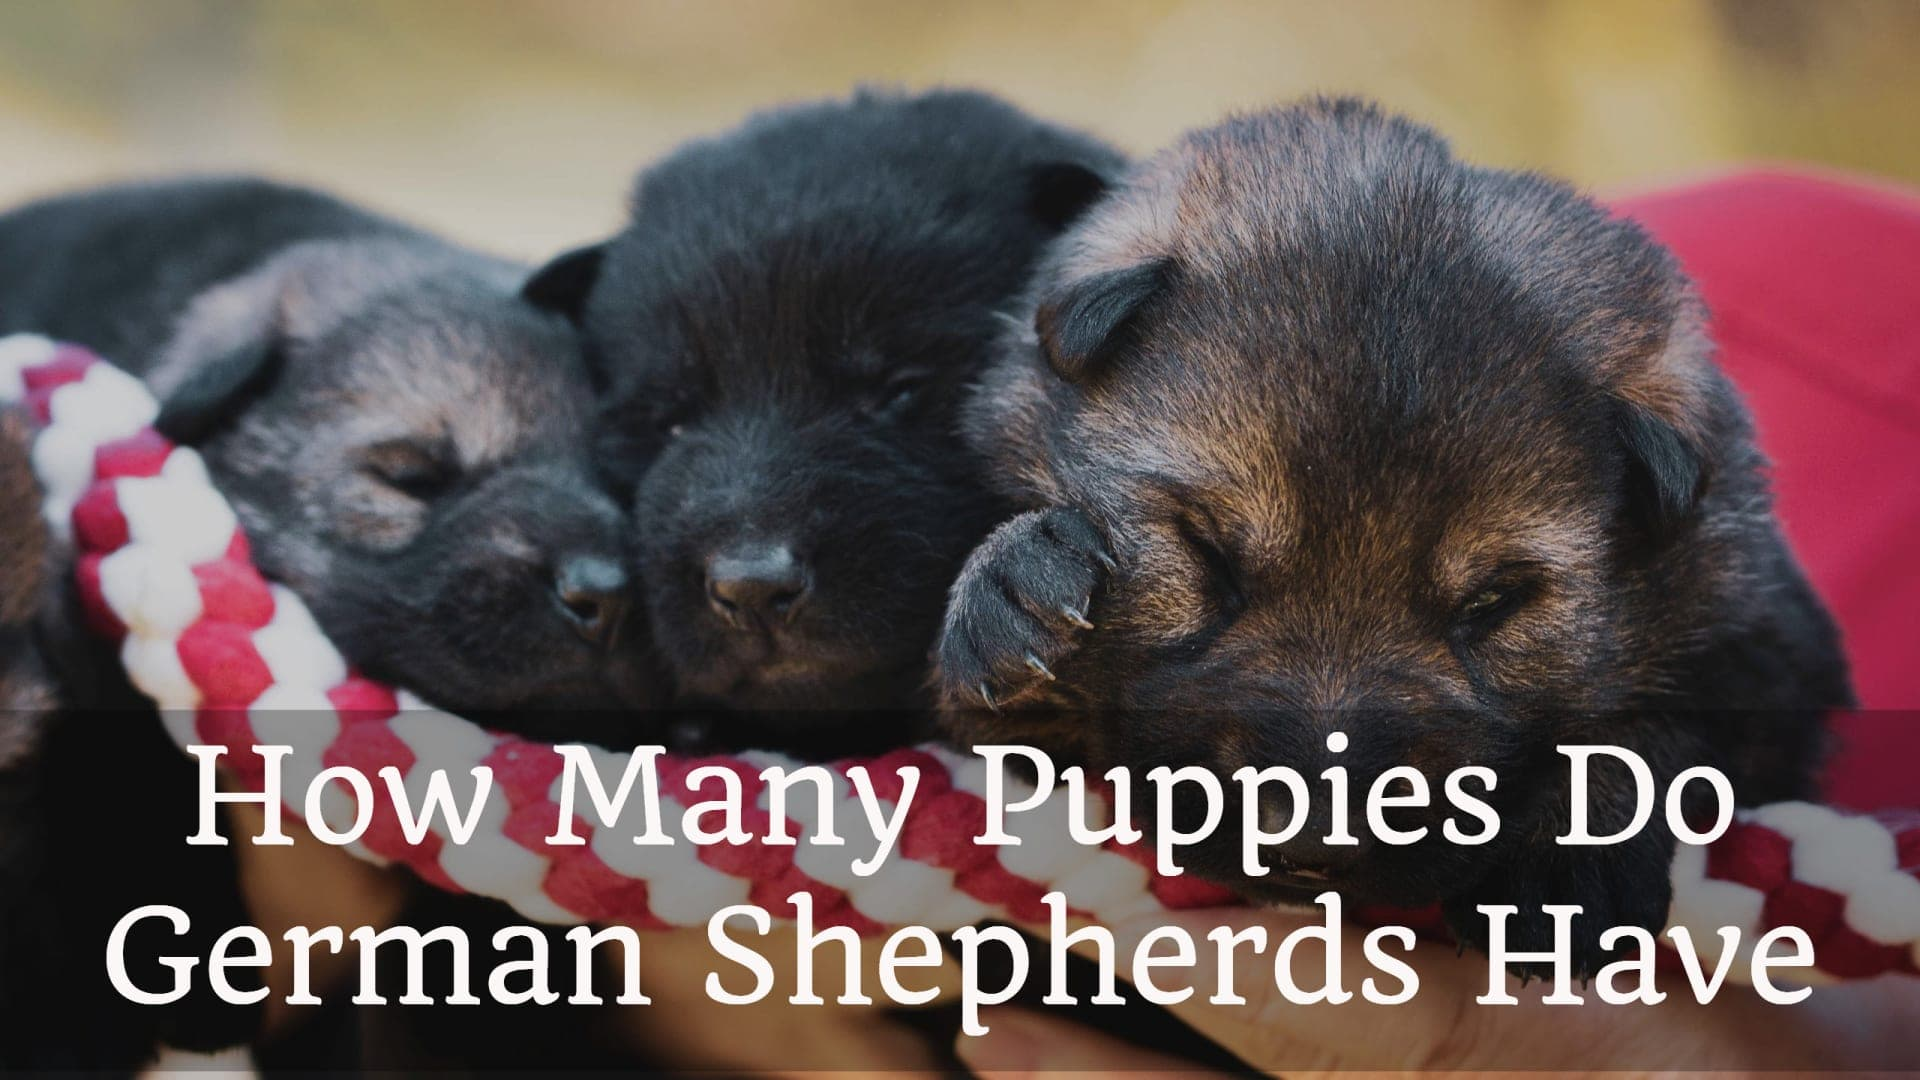 How Many Puppies Do German Shepherds Have